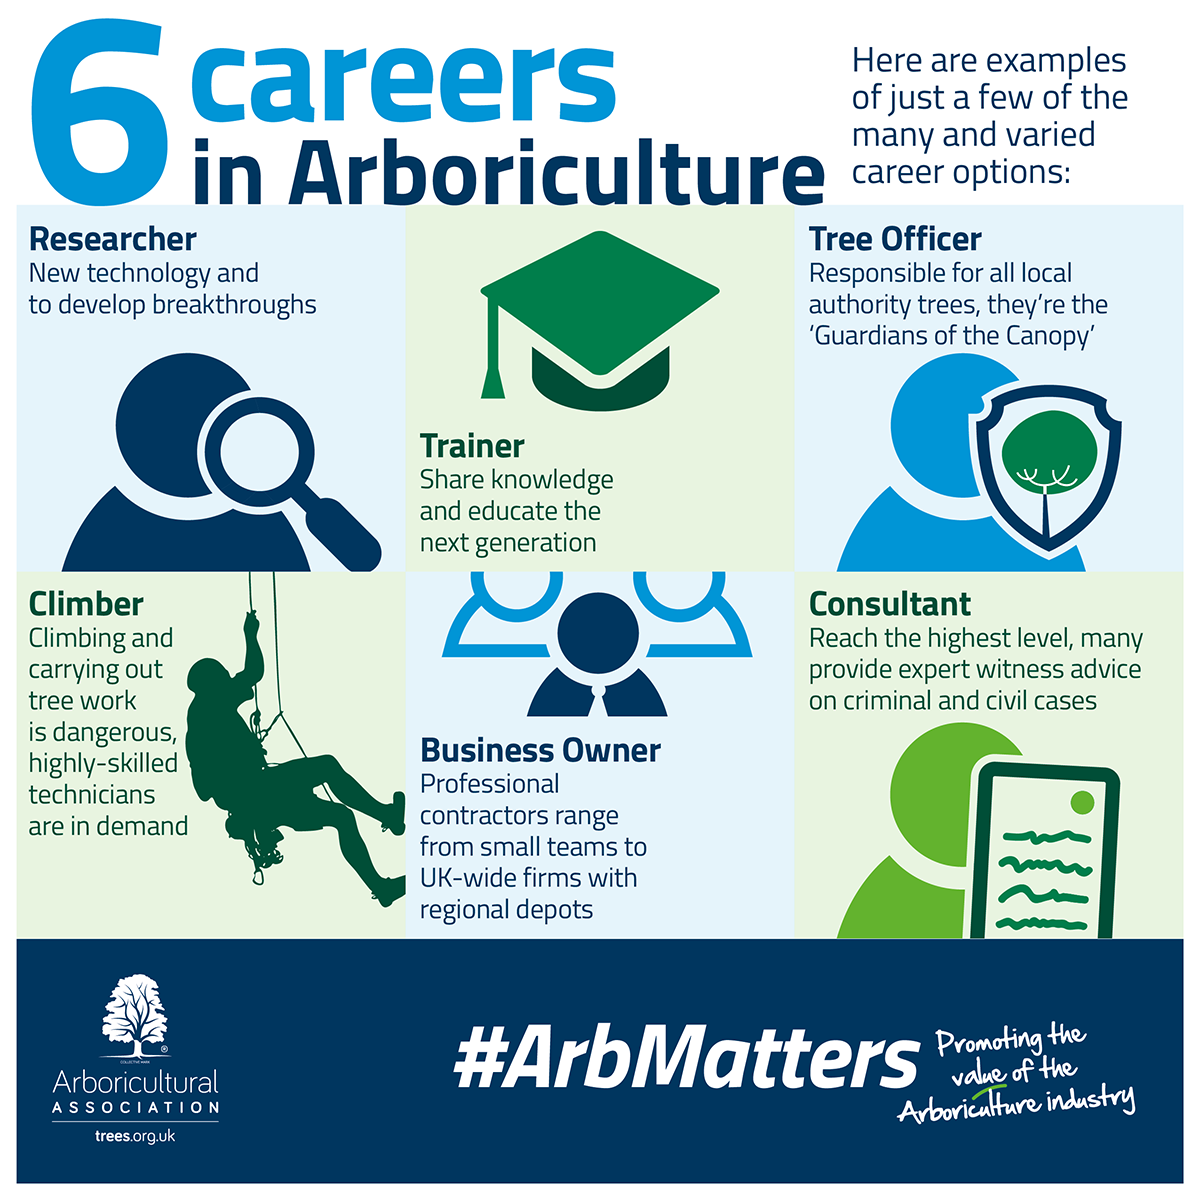 6 careers in Arboriculture